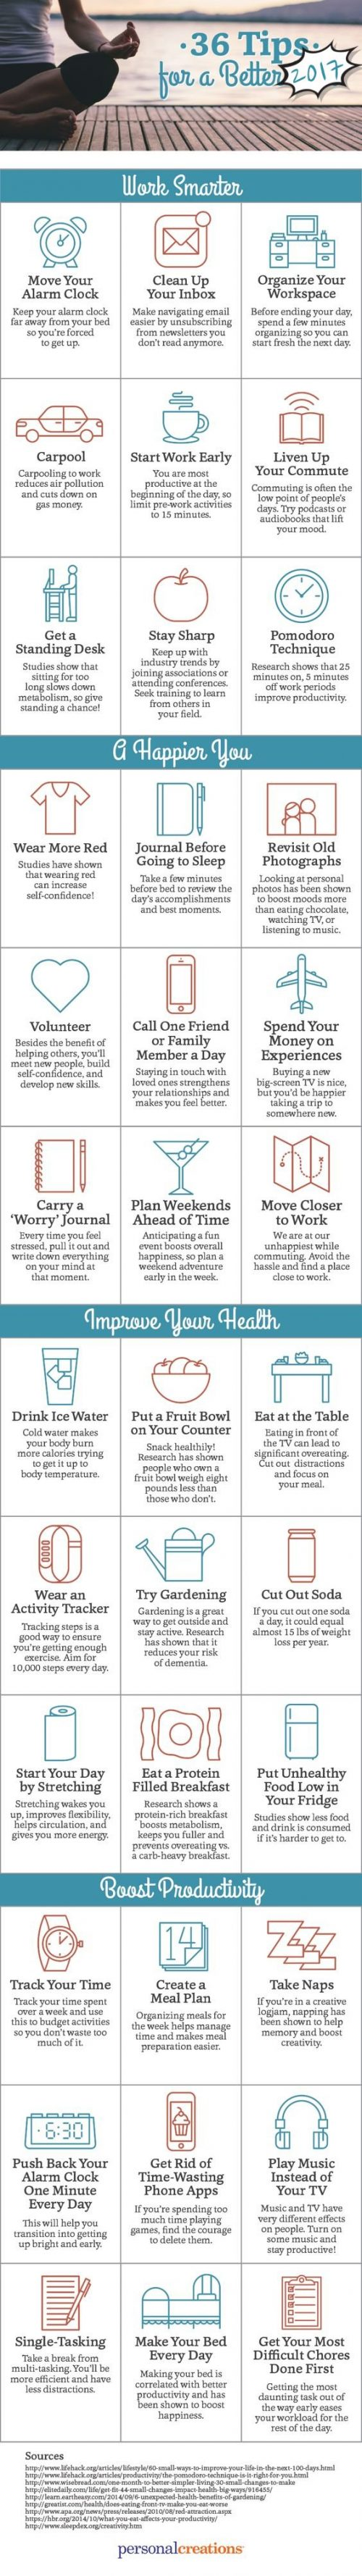 Tips for a better new year